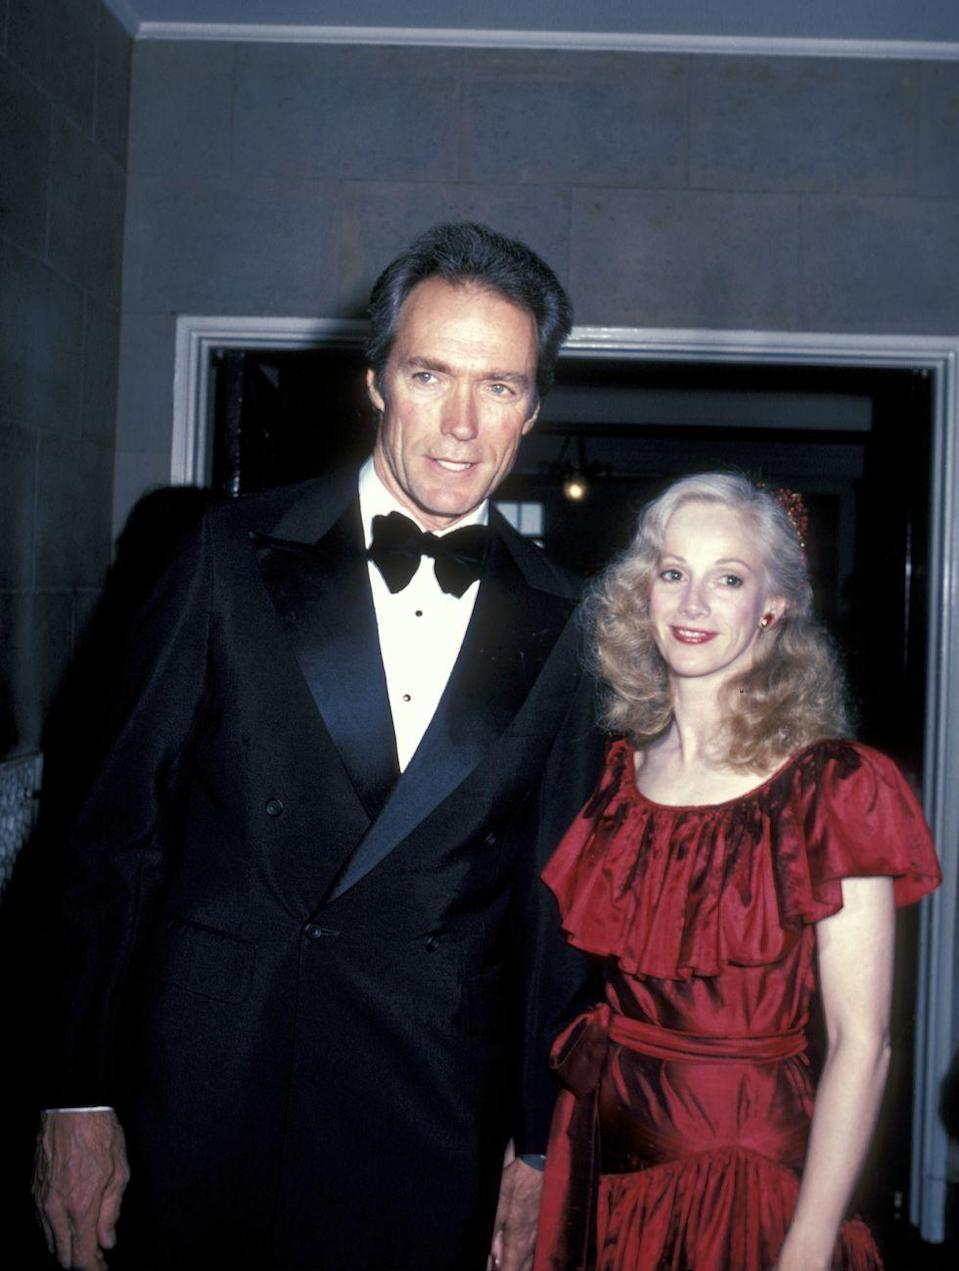 """<p>Actress Sondra Locke and Eastwood struck up a romance on the set of <em>The Gauntlet</em>. Even though Eastwood wasn't divorced from Johnson yet, he moved <a href=""""https://abcnews.go.com/Entertainment/clint-eastwoods-women/story?id=20235215"""" rel=""""nofollow noopener"""" target=""""_blank"""" data-ylk=""""slk:into a Bel-Air home with her"""" class=""""link rapid-noclick-resp"""">into a Bel-Air home with her</a>. They were together for 12 years, during which time they made four films together.</p>"""